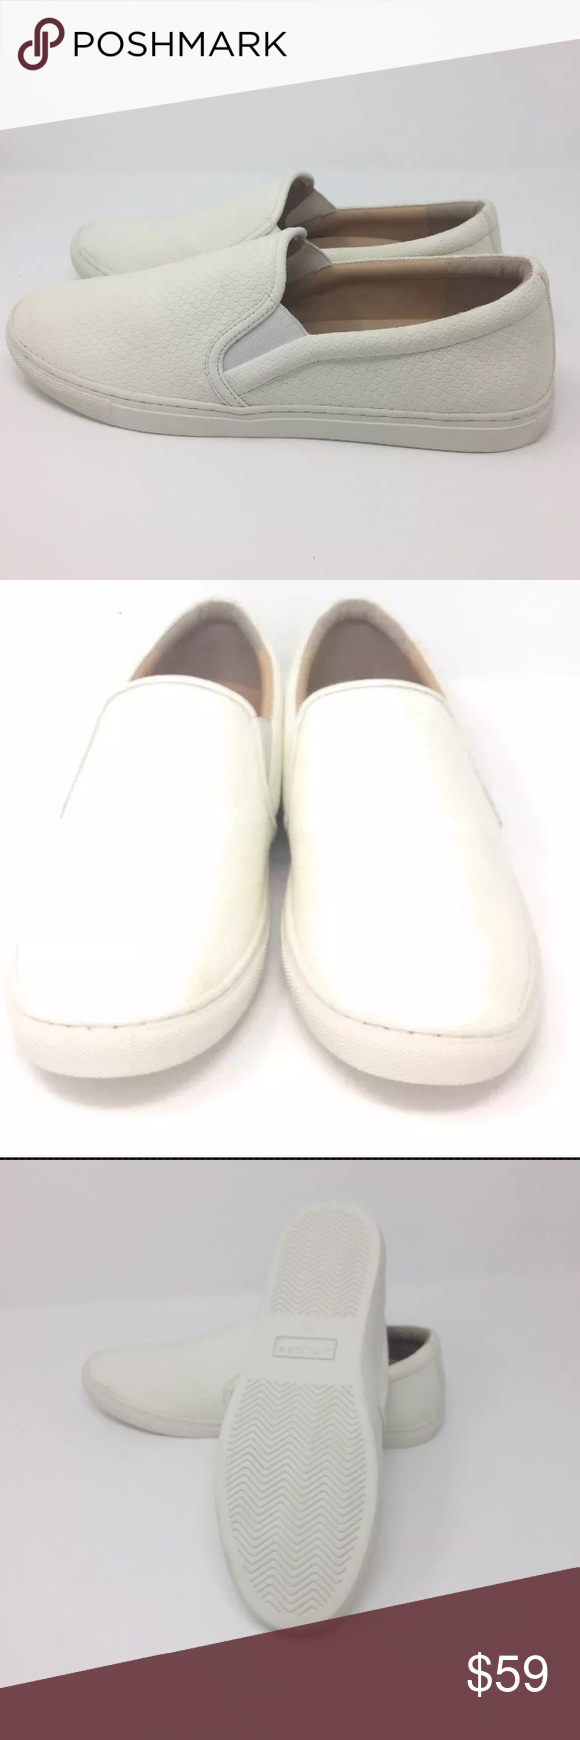 Nwot J Slides White Embossed Lux Cathie Slip On J Slides Slides Shoes Vans Classic Slip On Sneaker